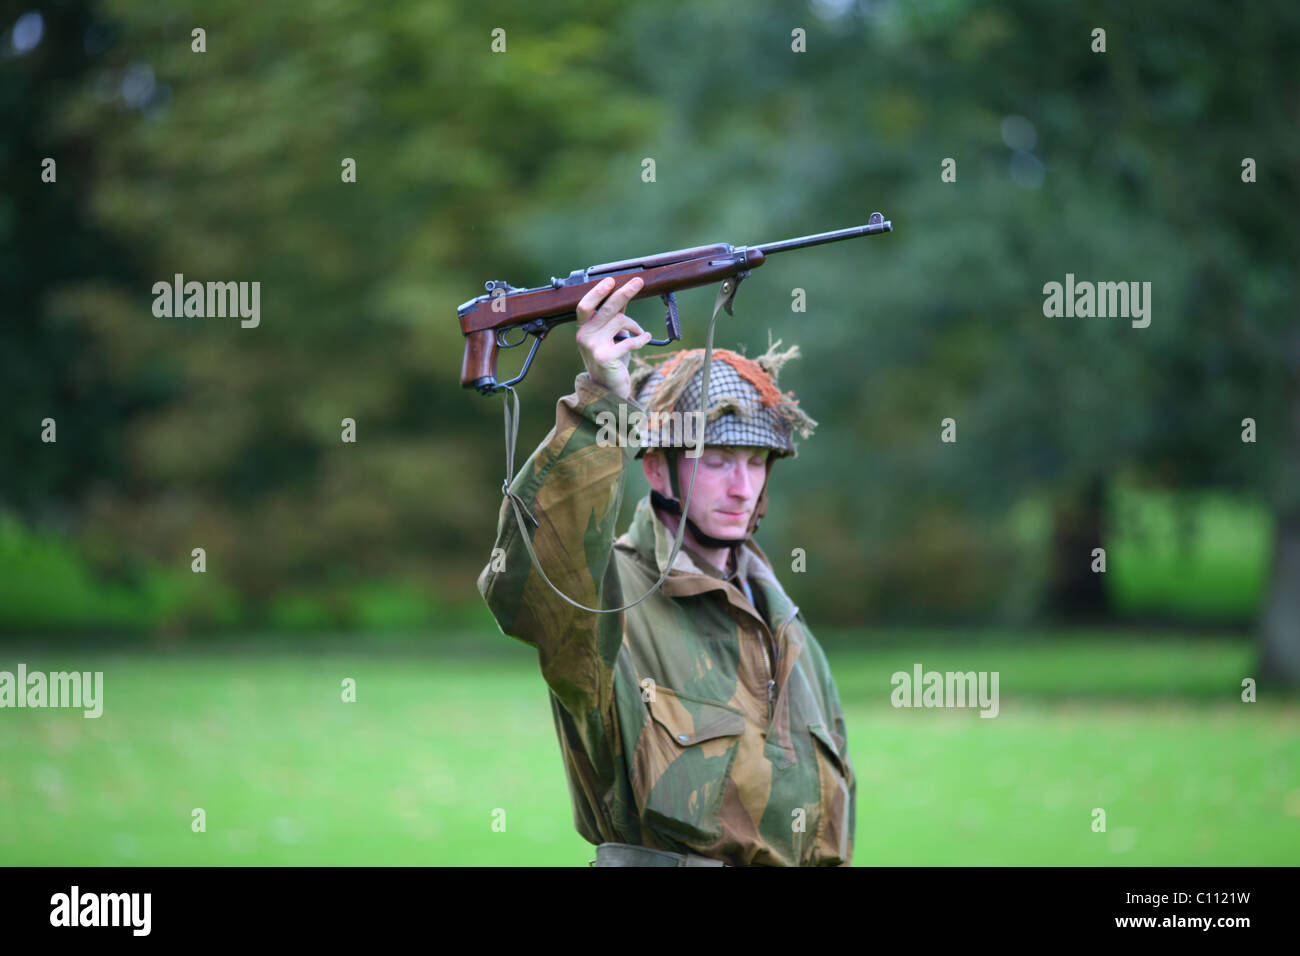 Reconstruction WW2 soldier with US M1E5 M1 Garant machine gun variant with folding stock for paratroops - Stock Image